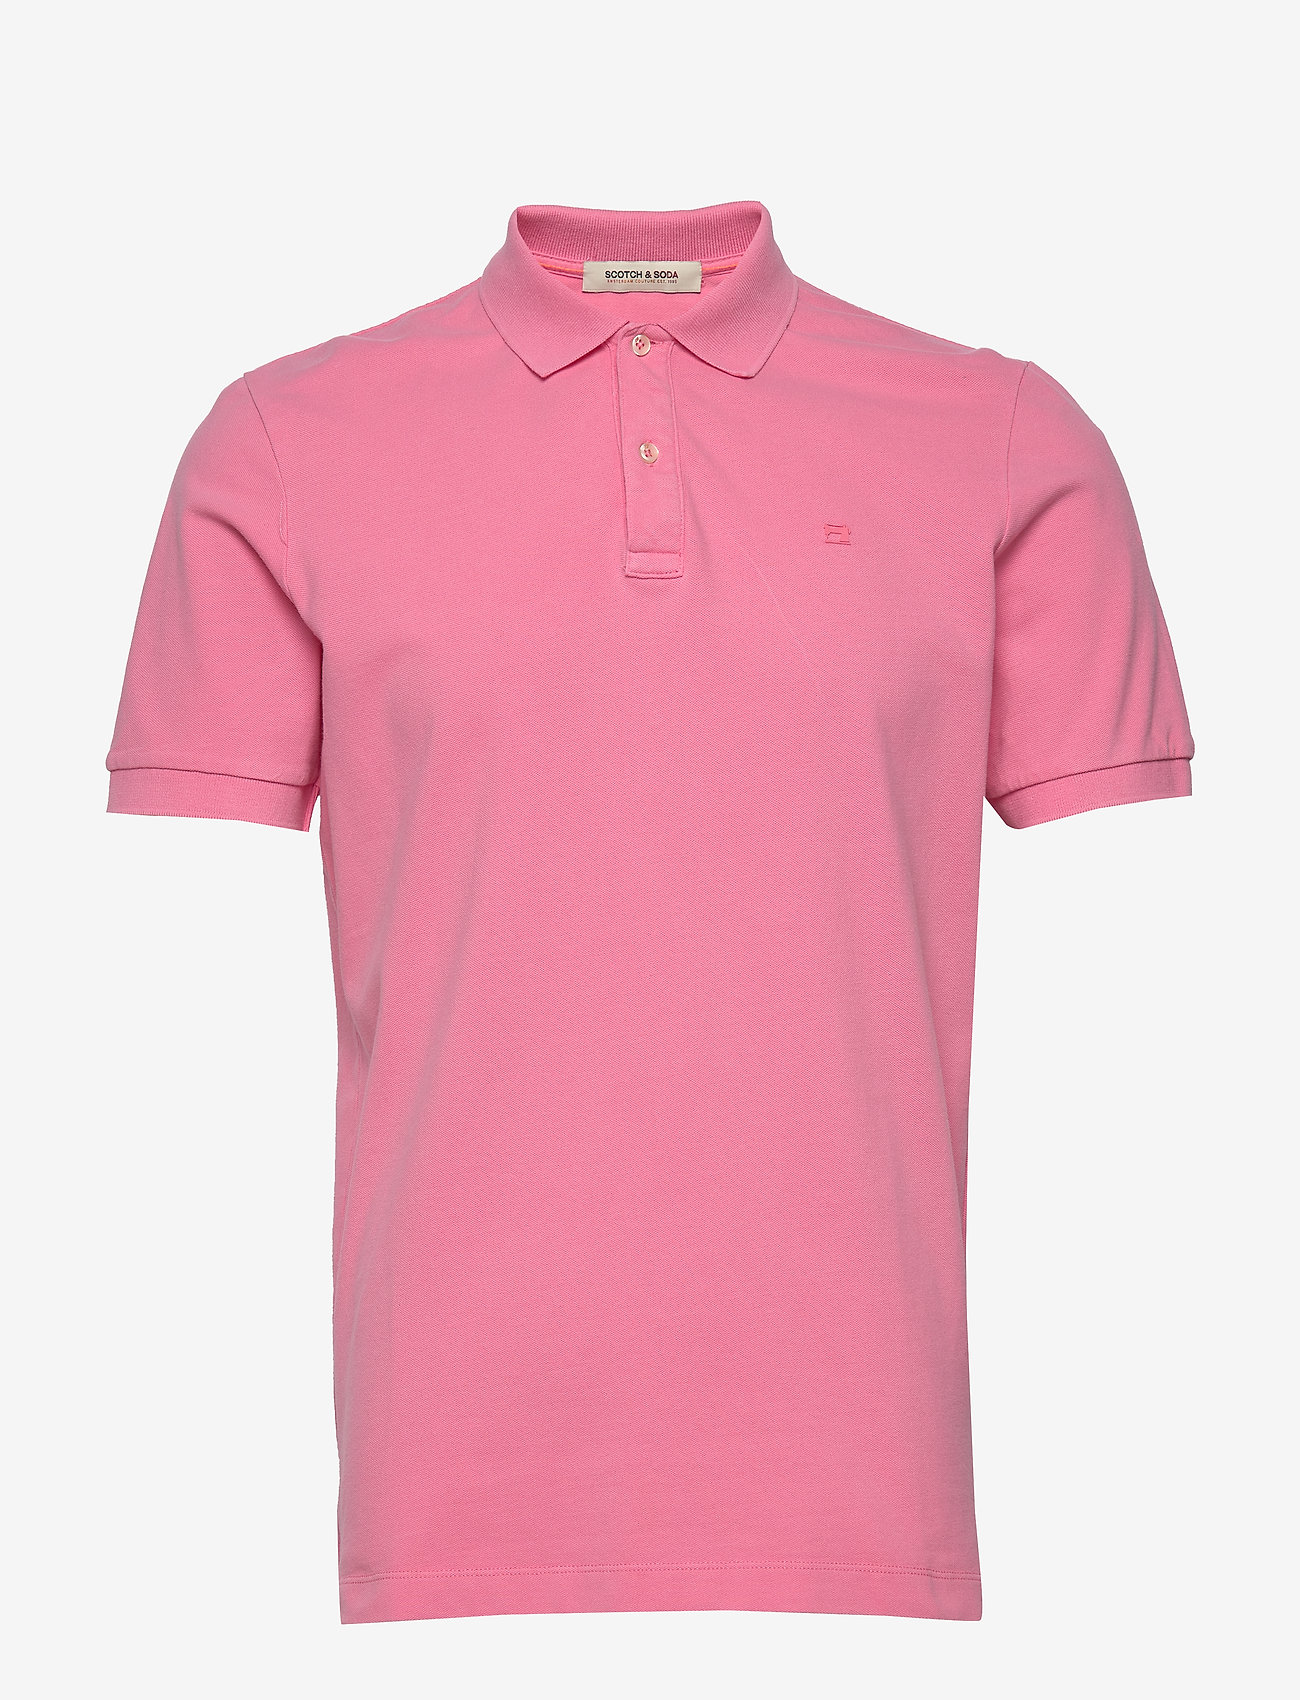 Scotch & Soda - Garment-dyed stretch pique polo - short-sleeved polos - hibiscus pink - 0